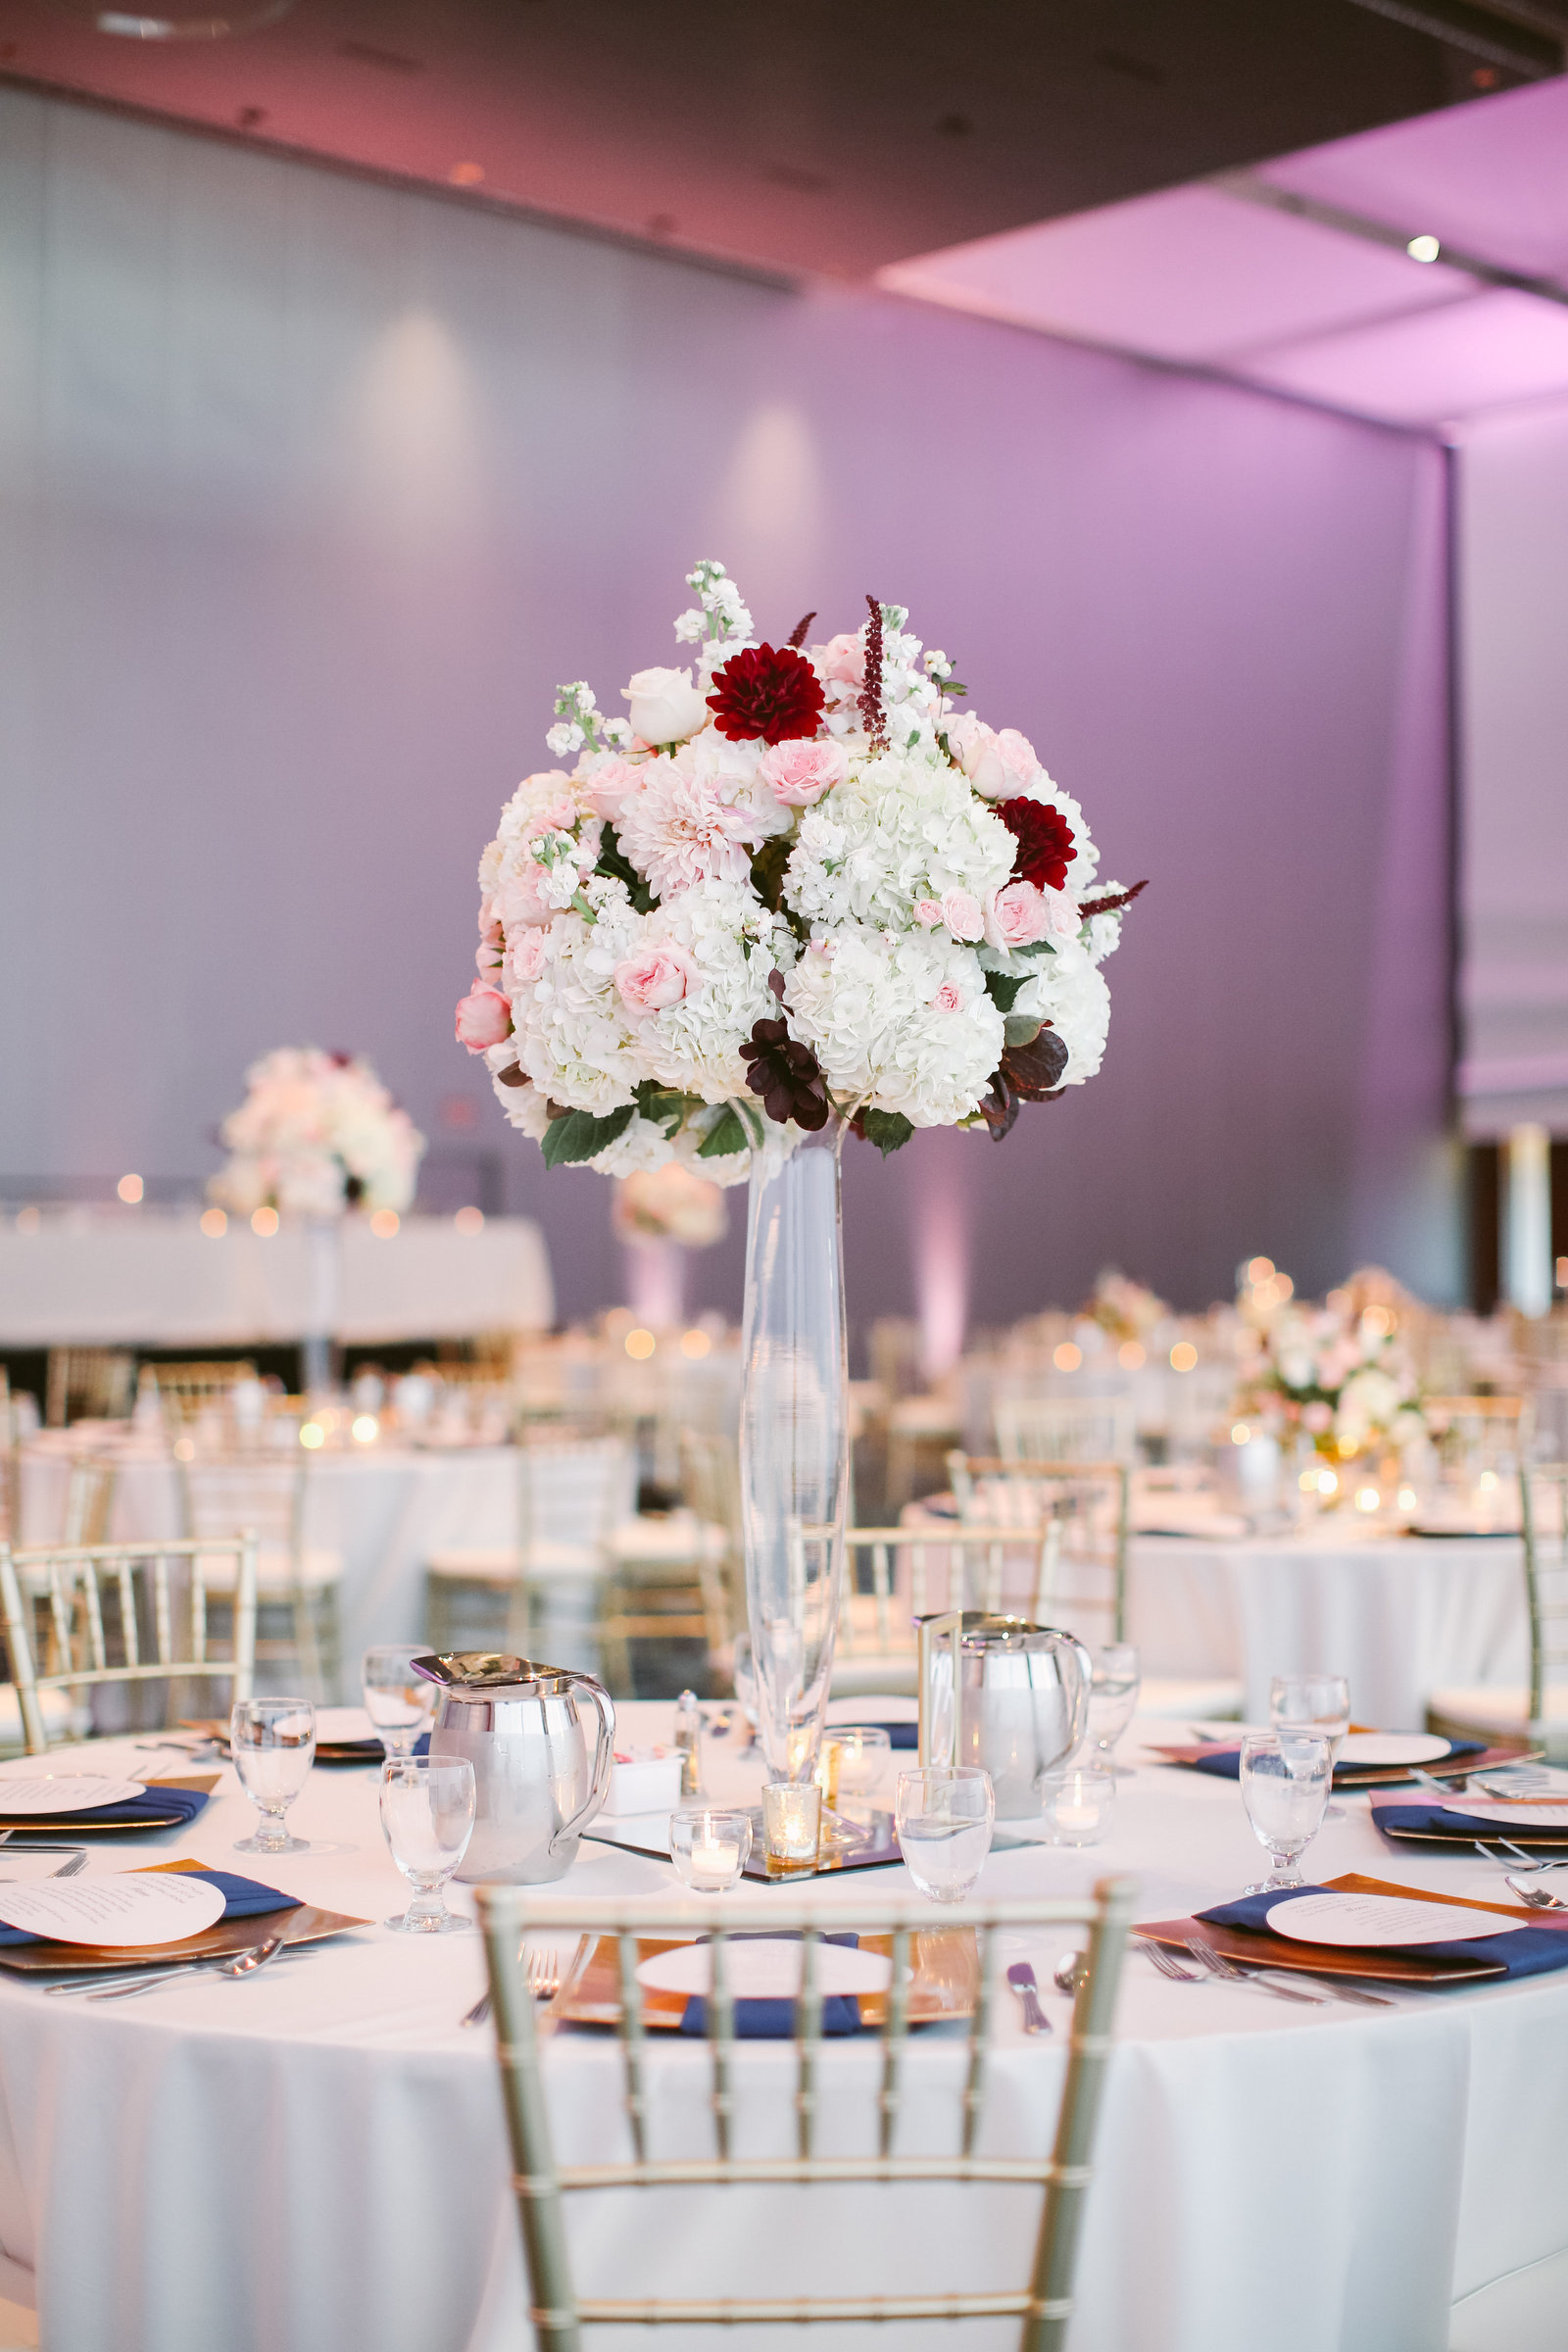 NikkiFerrell_Bachelor_Wedding_Madison_Sanders_Events_Kansas_City_Planner-1250